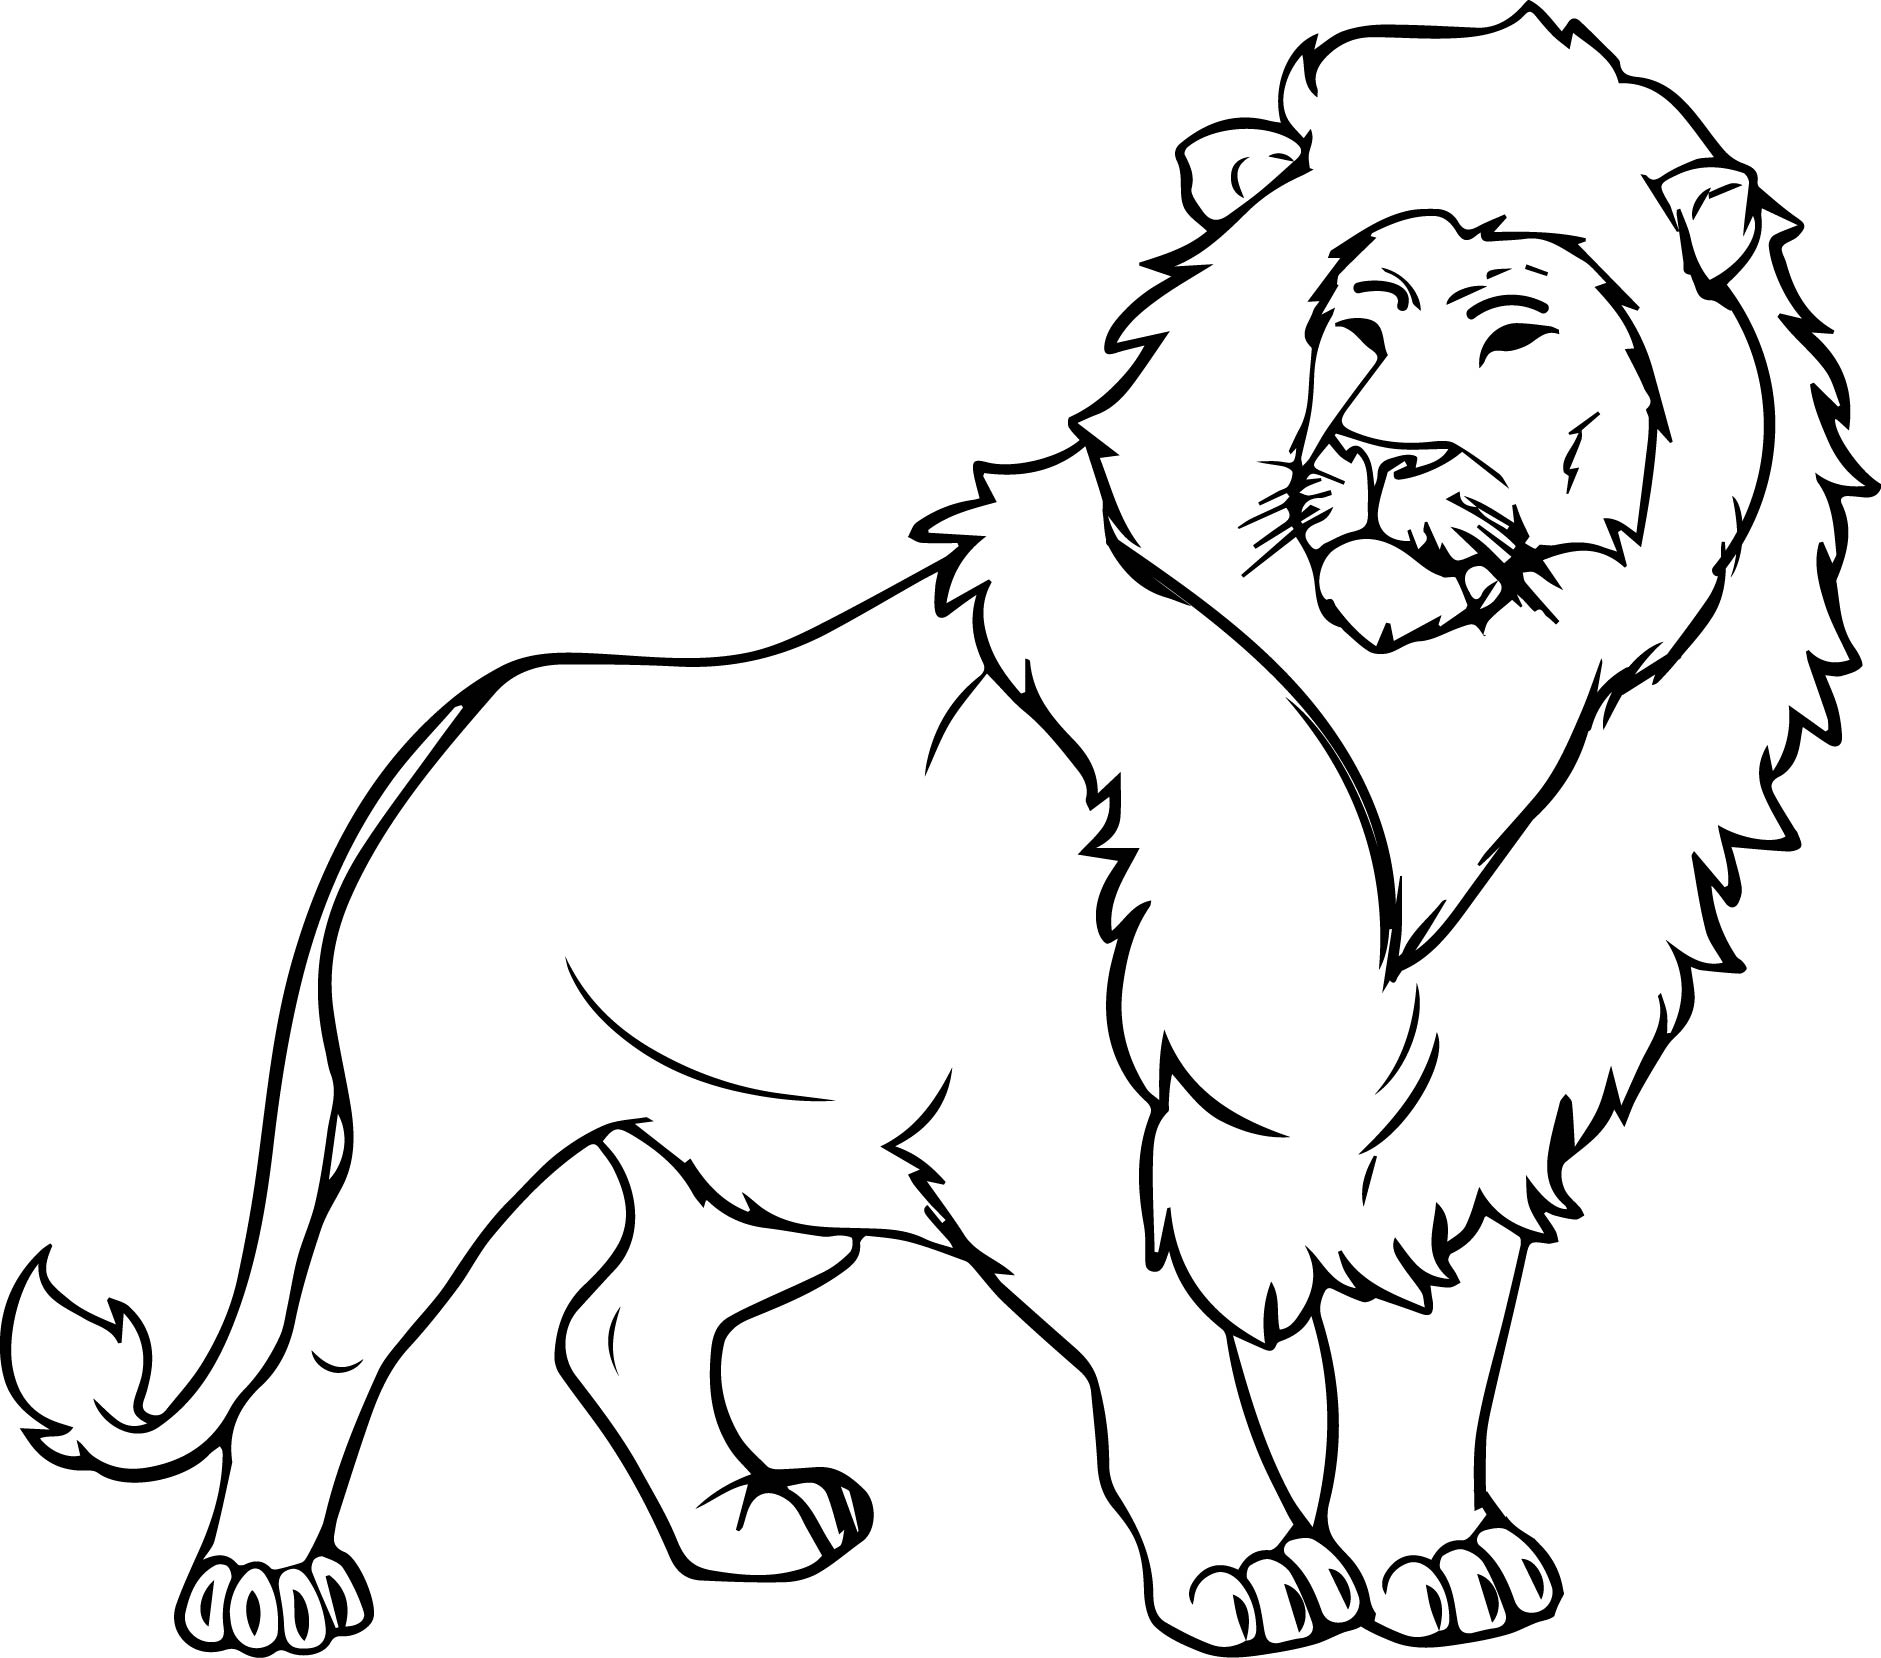 colour in lion lion head coloring page stock illustration download lion in colour